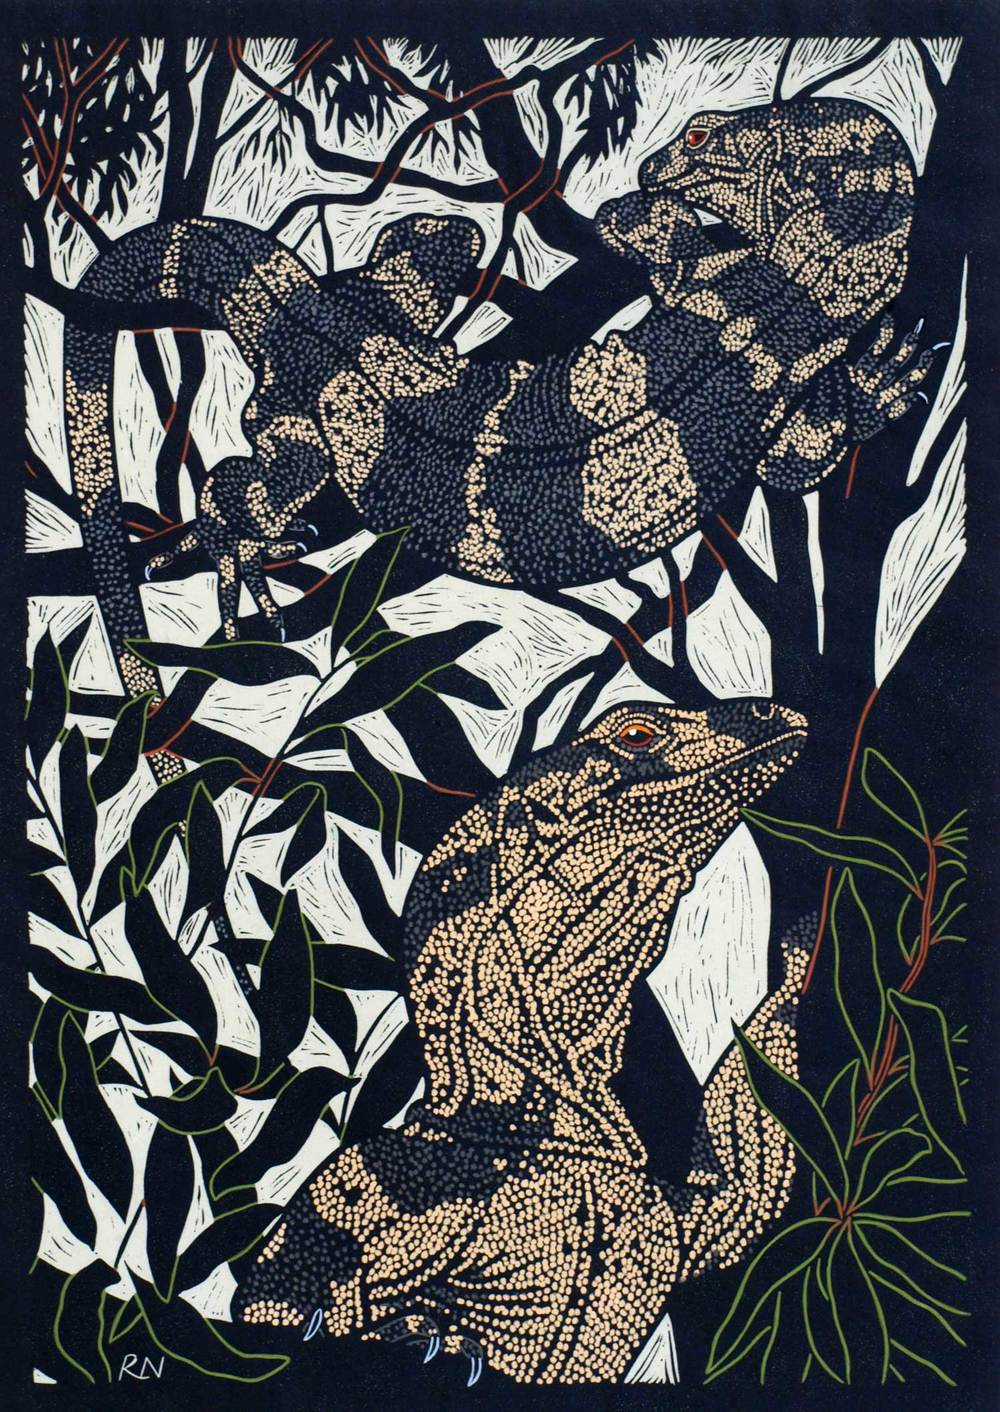 LACE MONITOR  49.5 X 35 CM    EDITION OF 50  HAND COLOURED LINOCUT ON HANDMADE JAPANESE PAPER  $1,050